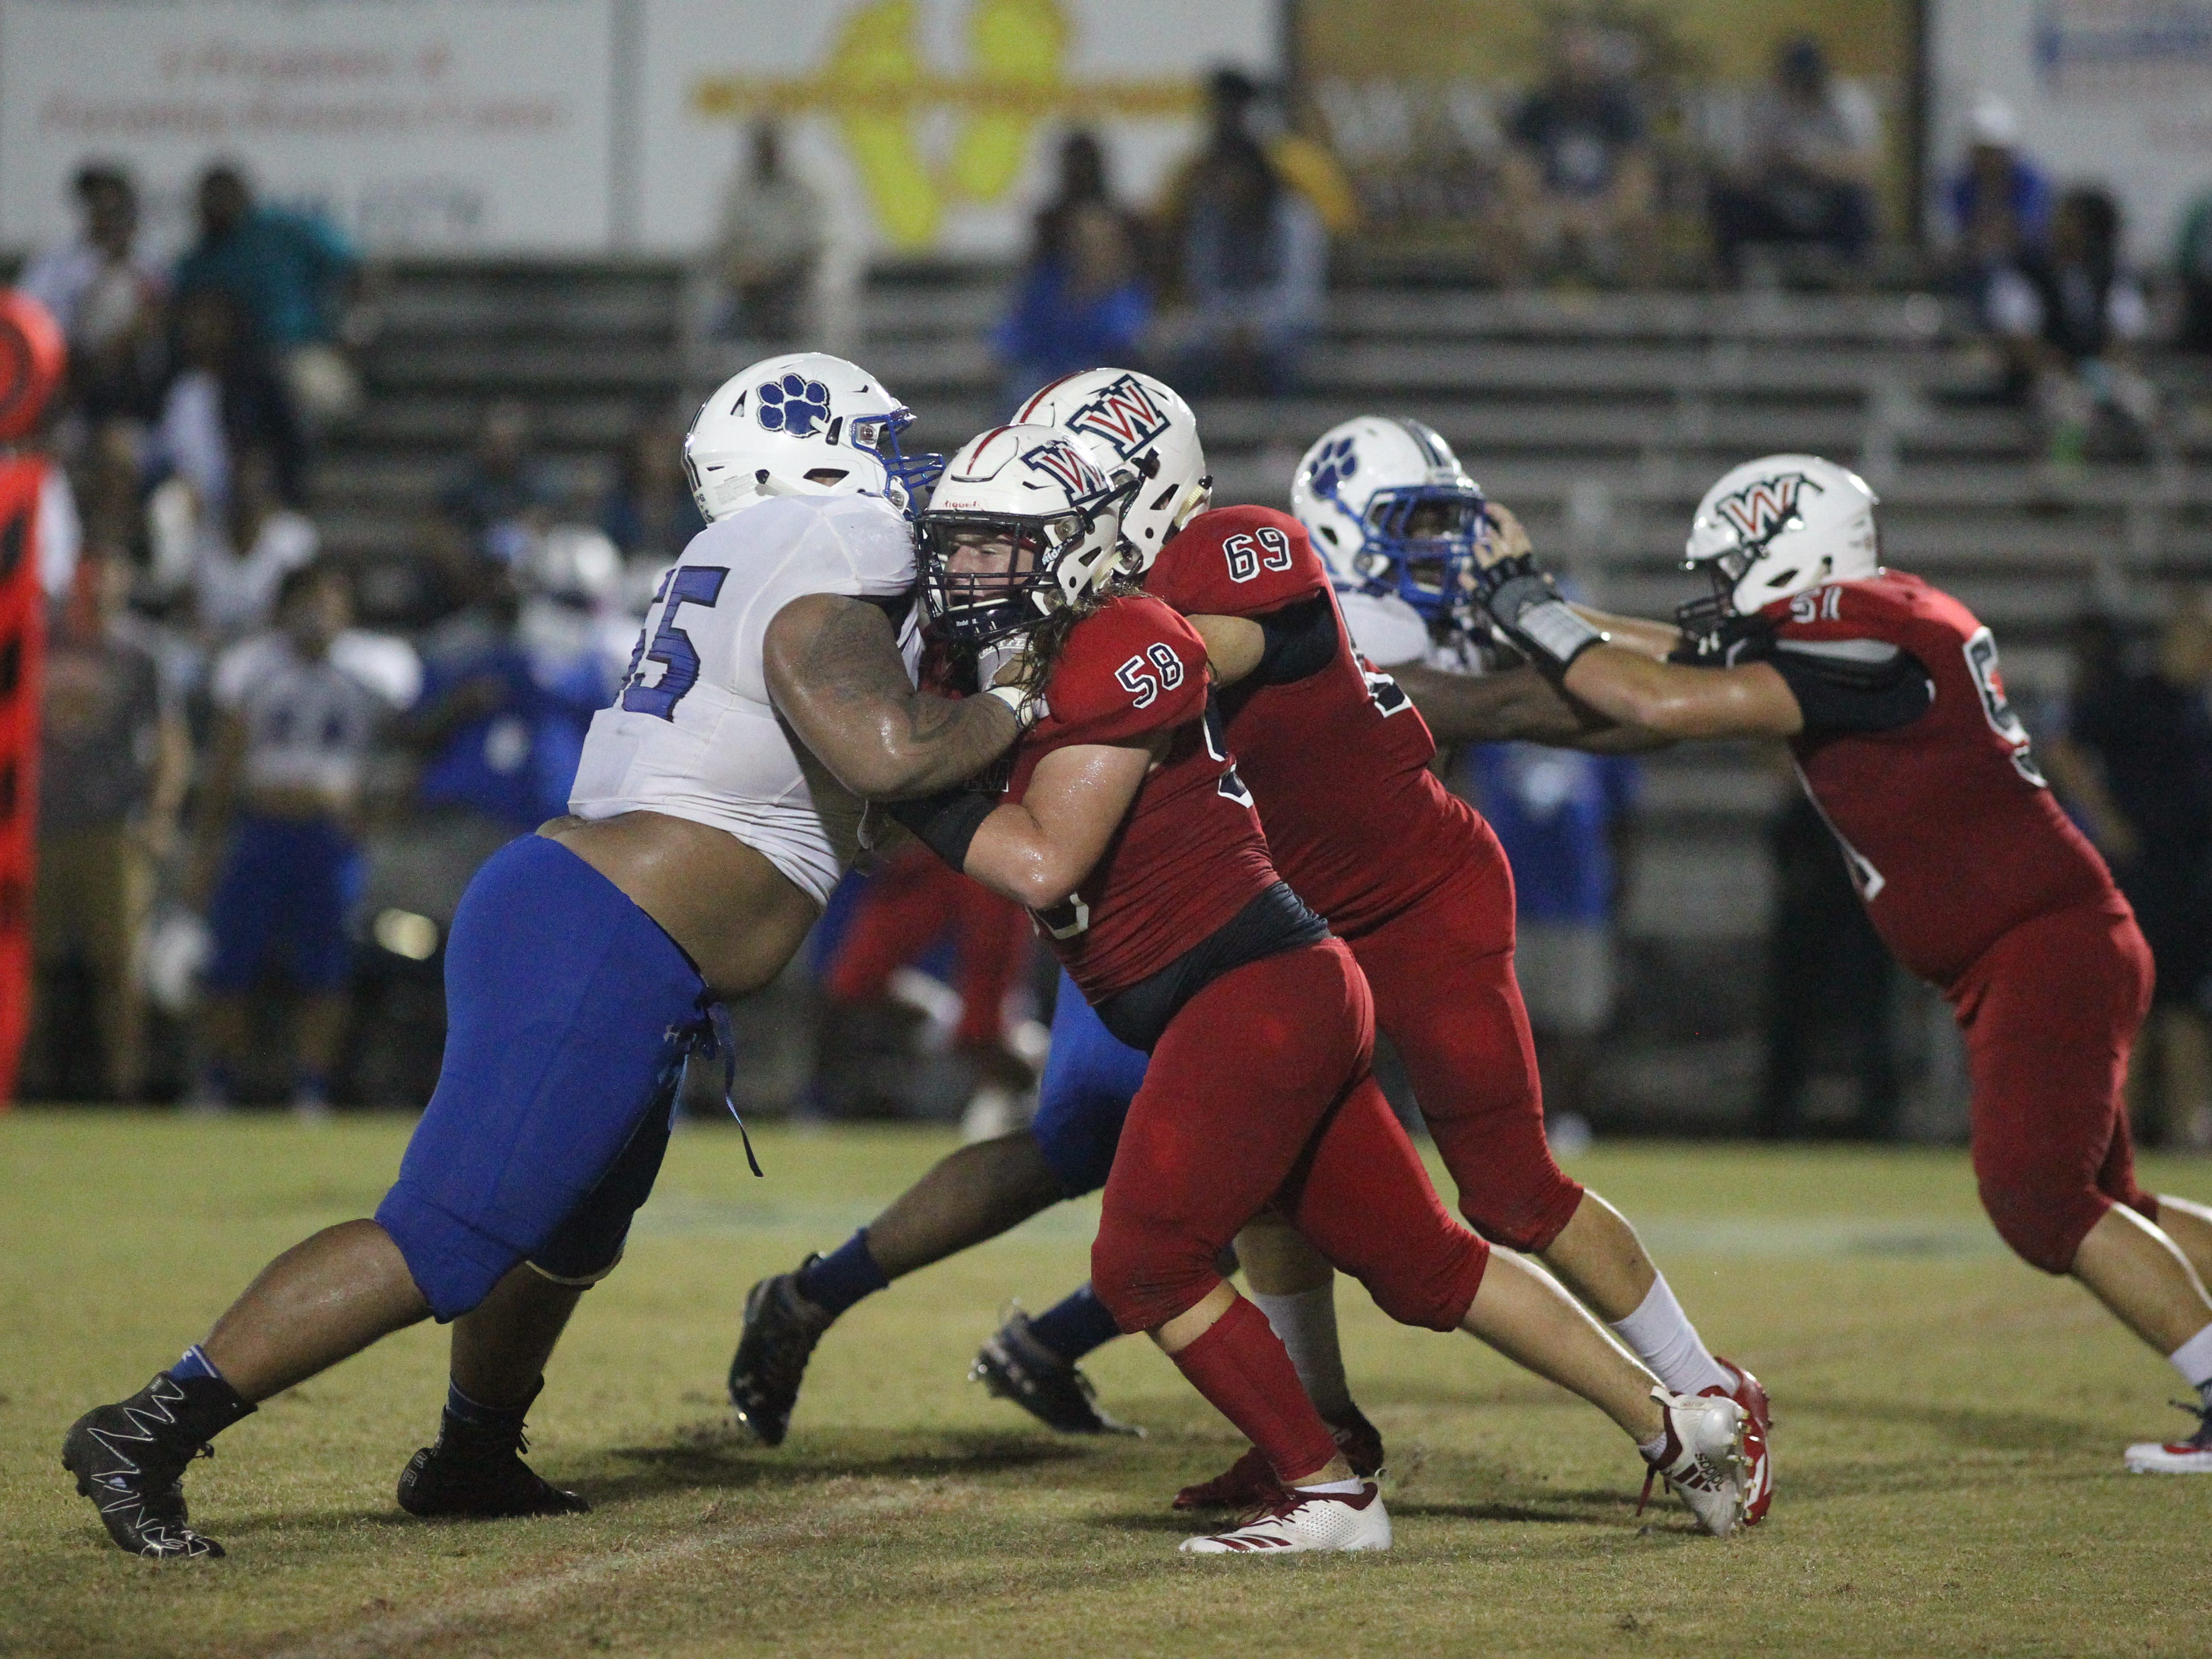 Godby defensive lineman Quentin Jones takes on two Wakulla offensive linemen as the Cougars beat Wakulla 37-13 on Friday night.